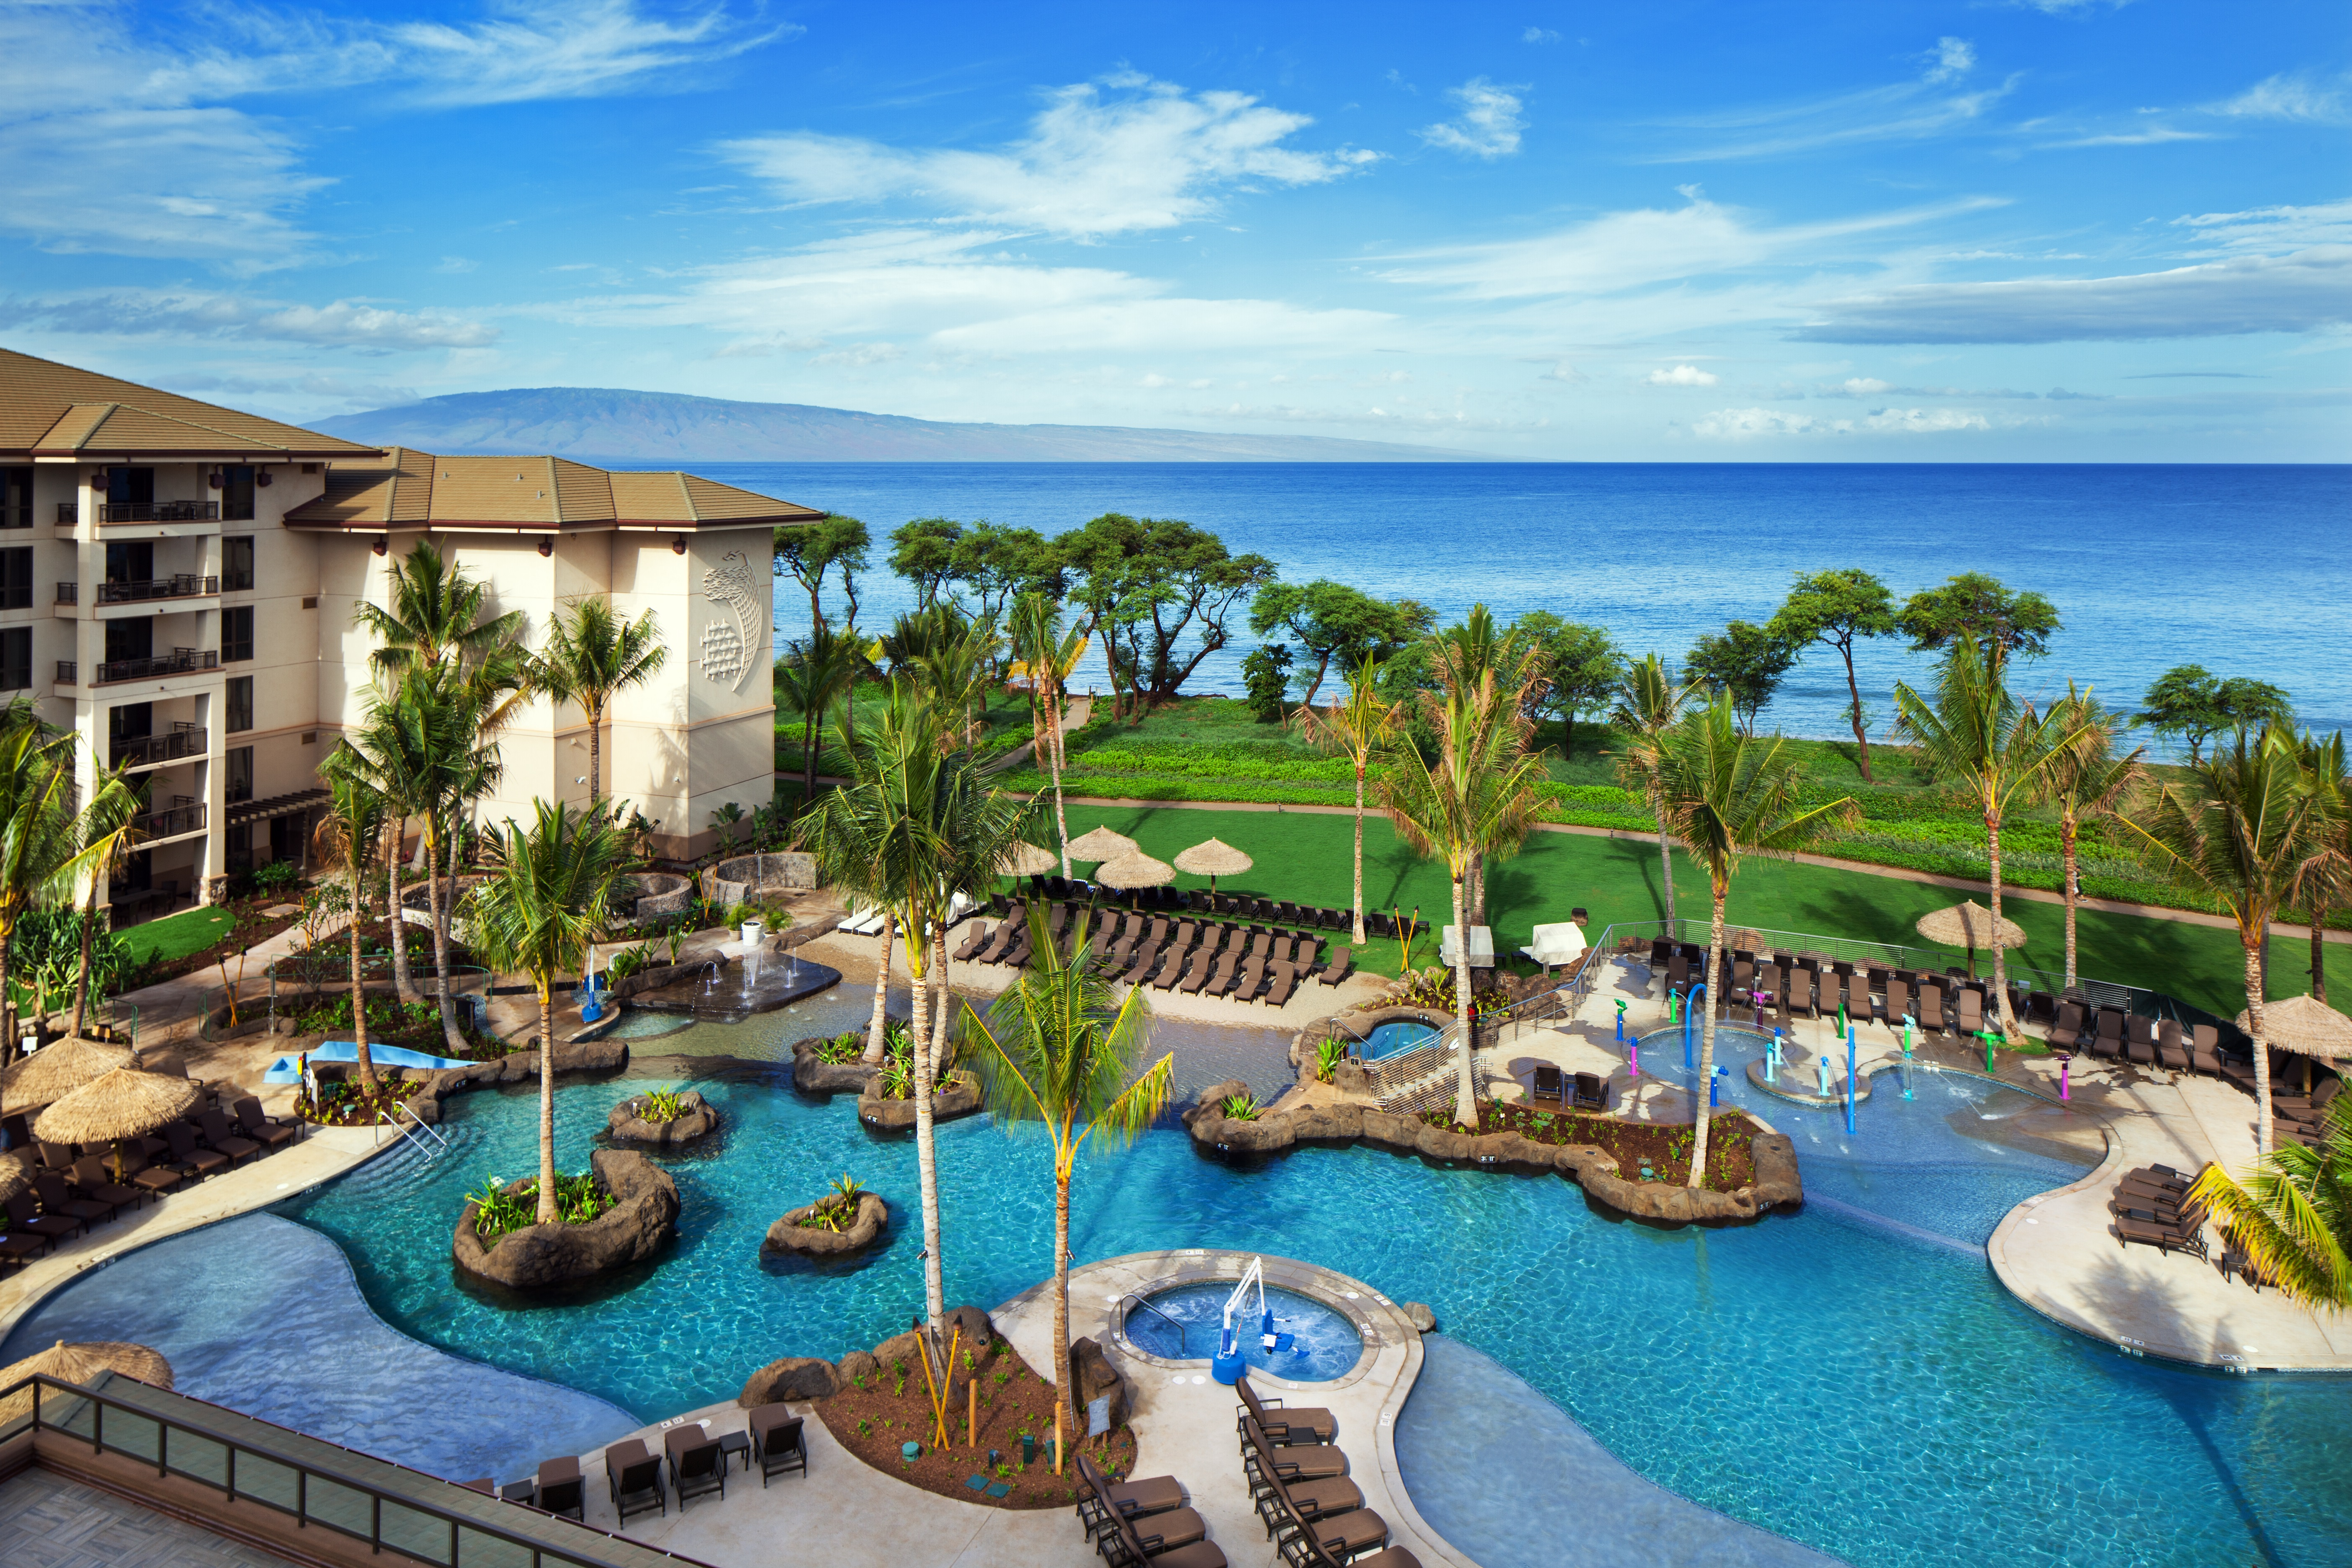 Hawaii Vacation Packages and Allinclusive Hawaii Vacation